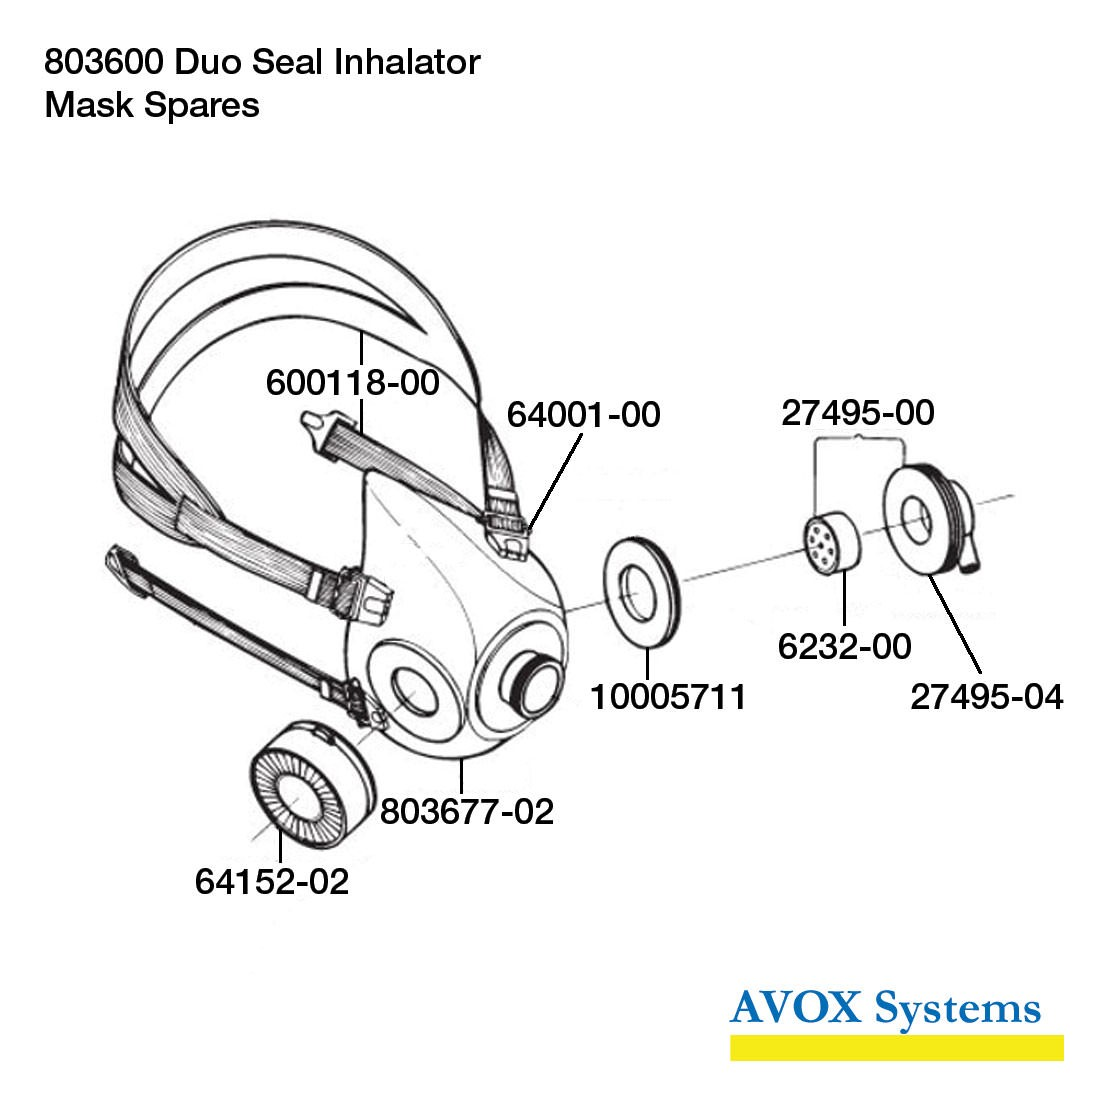 Avox 803600-04 Duo Seal Inhalator without First Stage Regulator Assembly with Microphone Assembly - Mask Spares